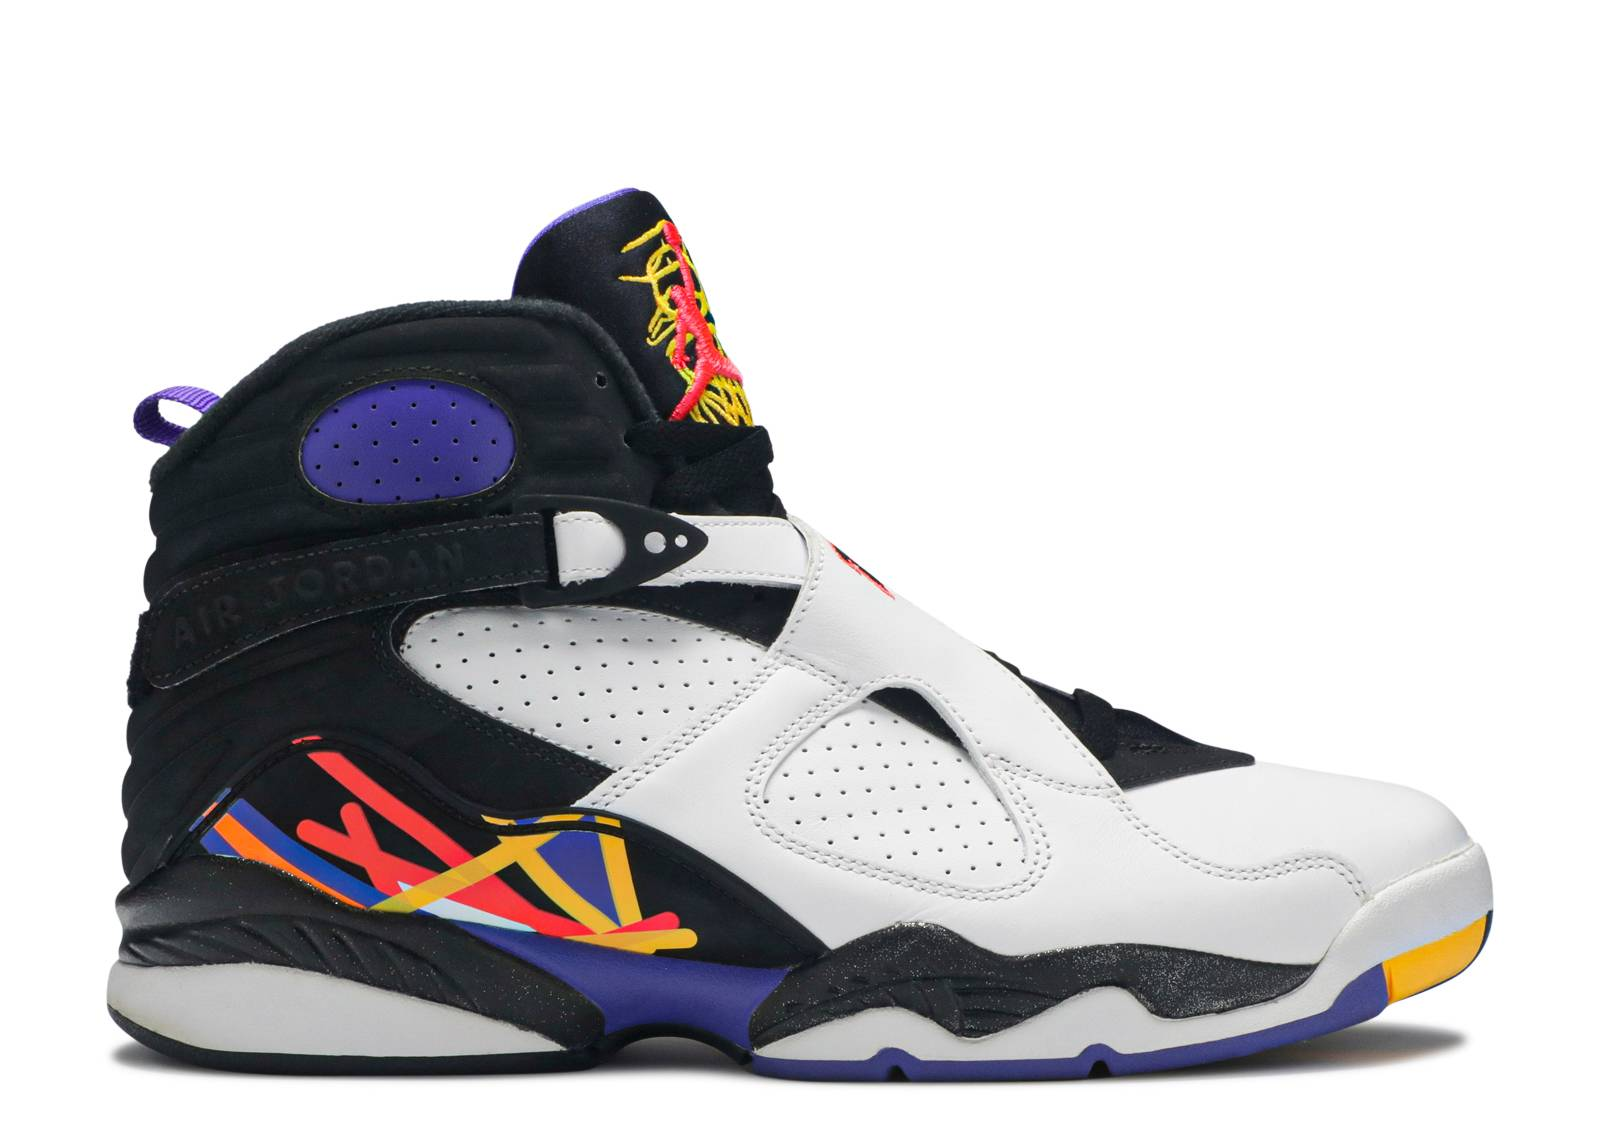 86f44214aab944 Air Jordan 8 Retro